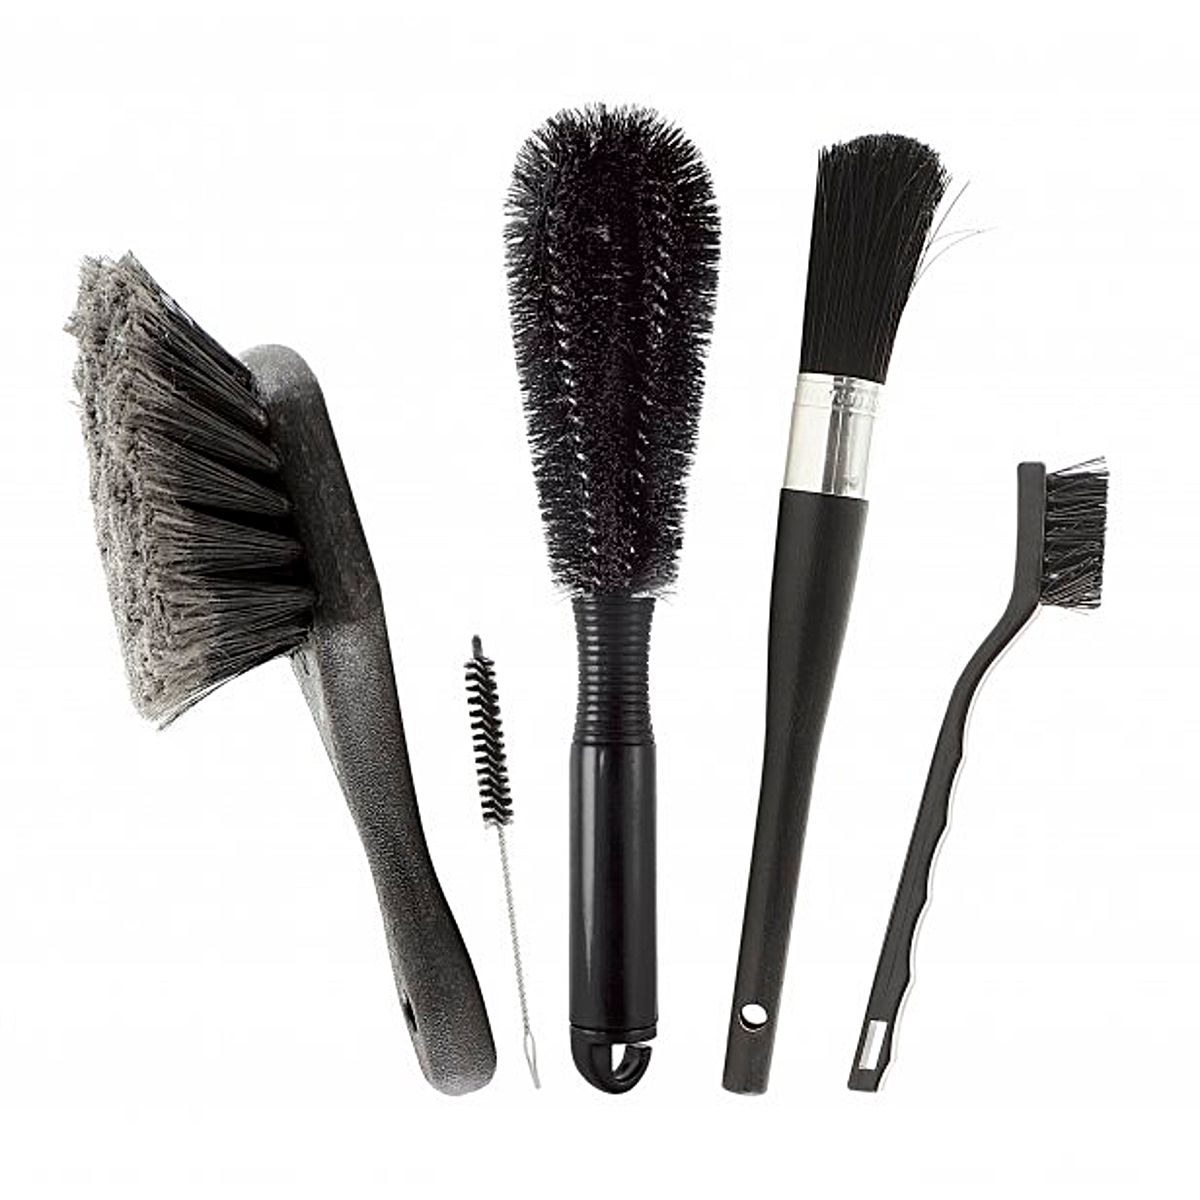 Easy Pro set de brosses